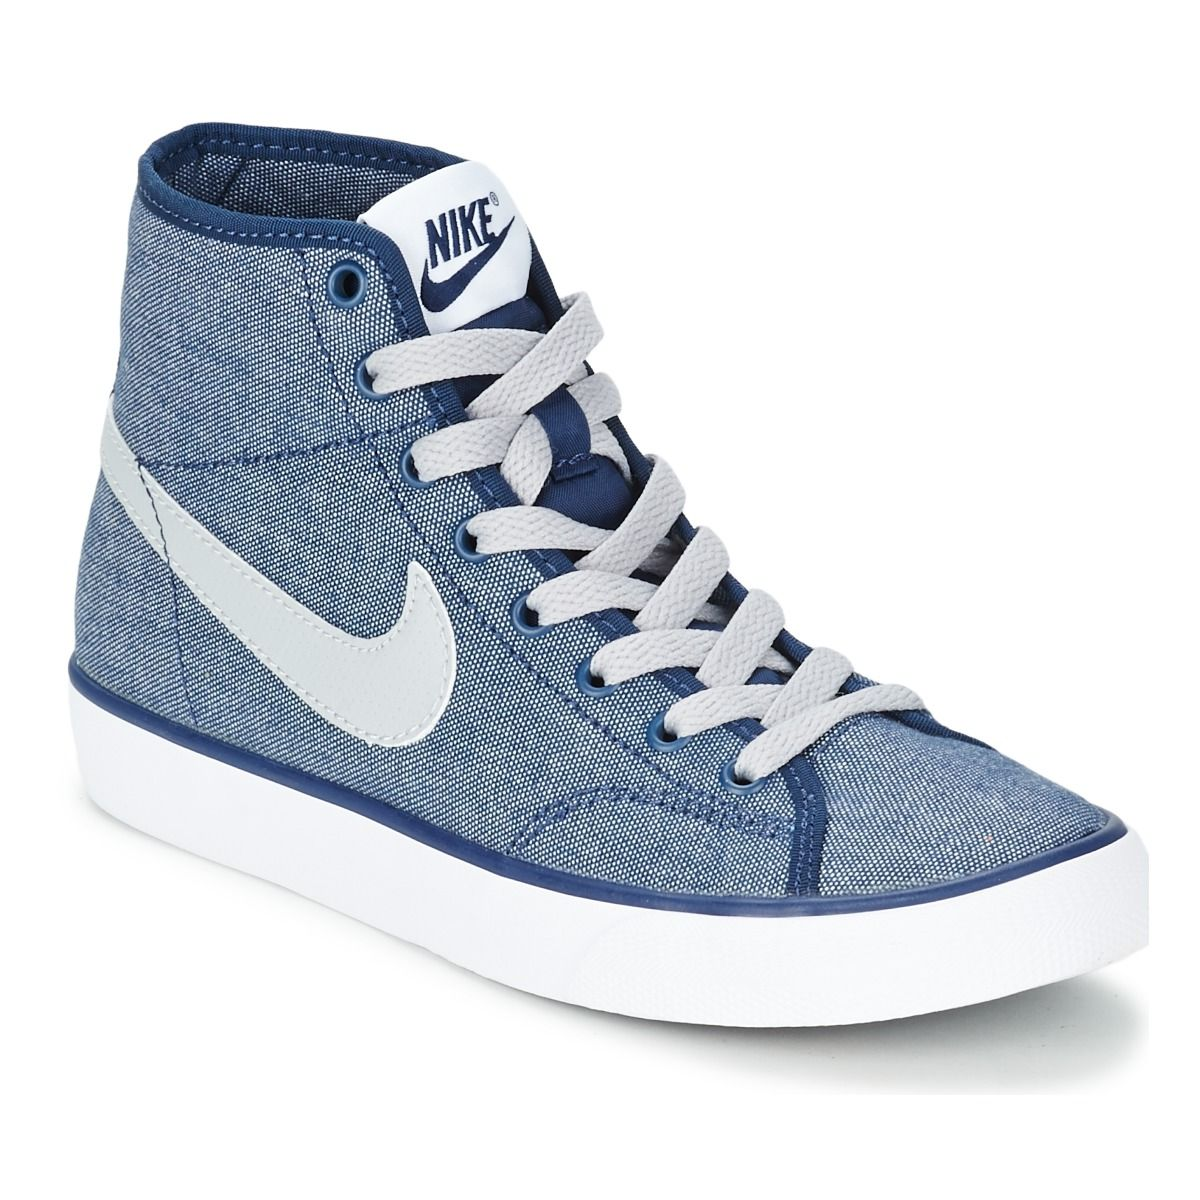 Trends For > Nike Shoes For Girls - 165.4KB